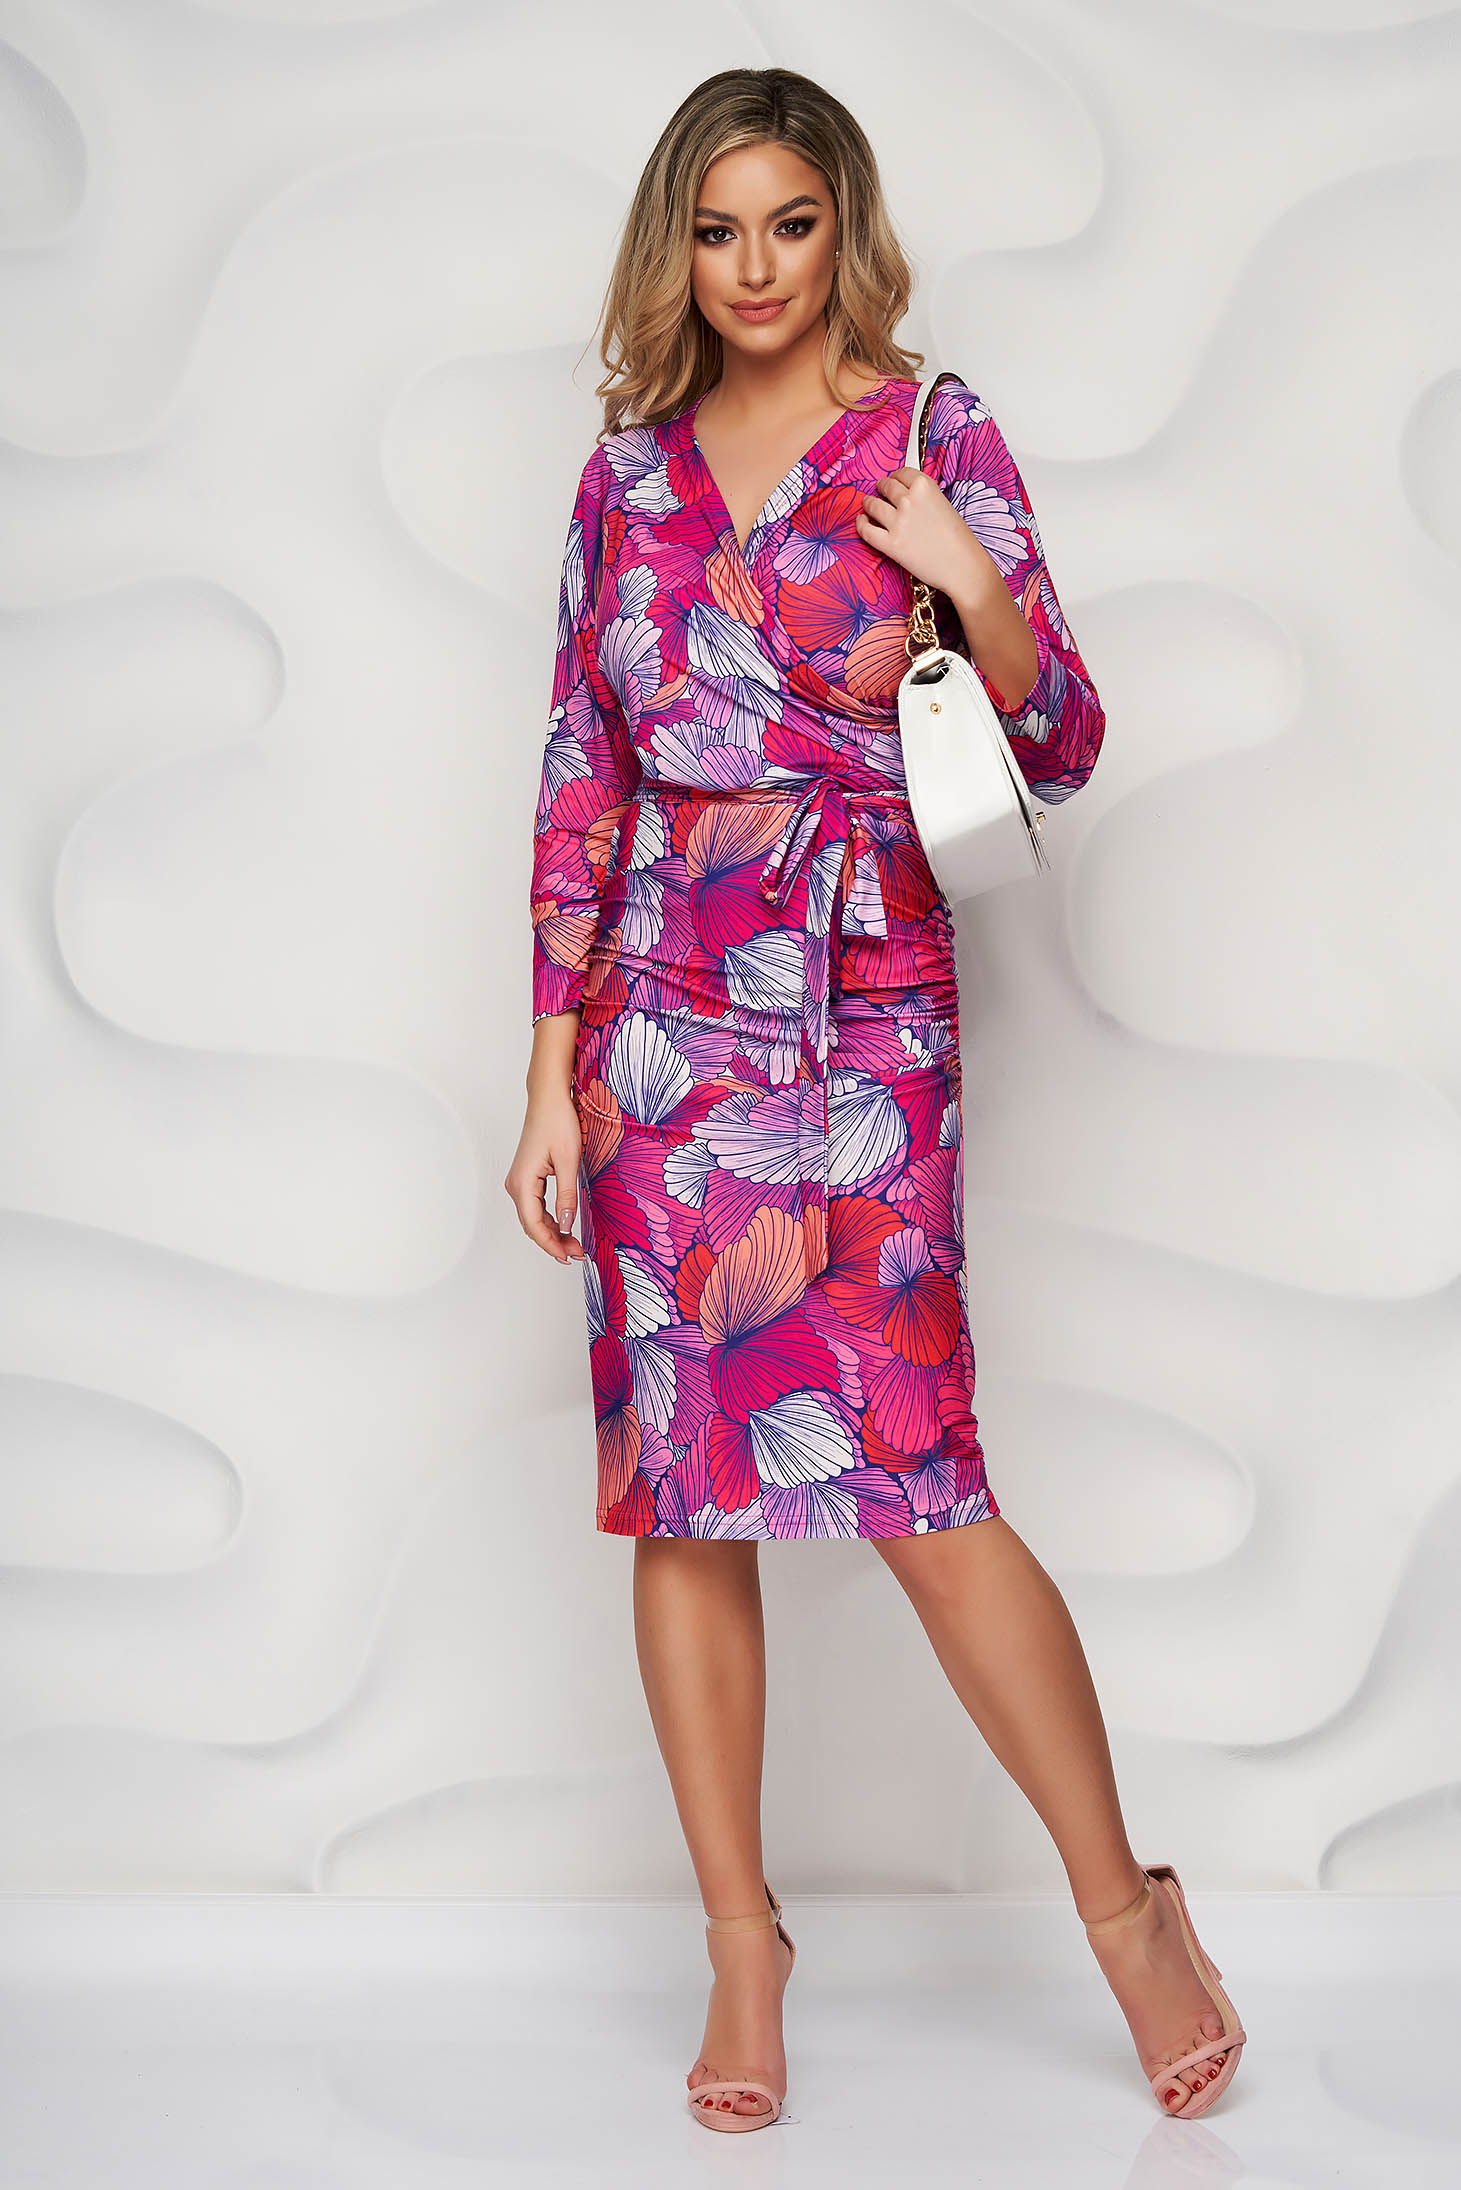 StarShinerS dress pencil with floral print from elastic and fine fabric with v-neckline office short cut